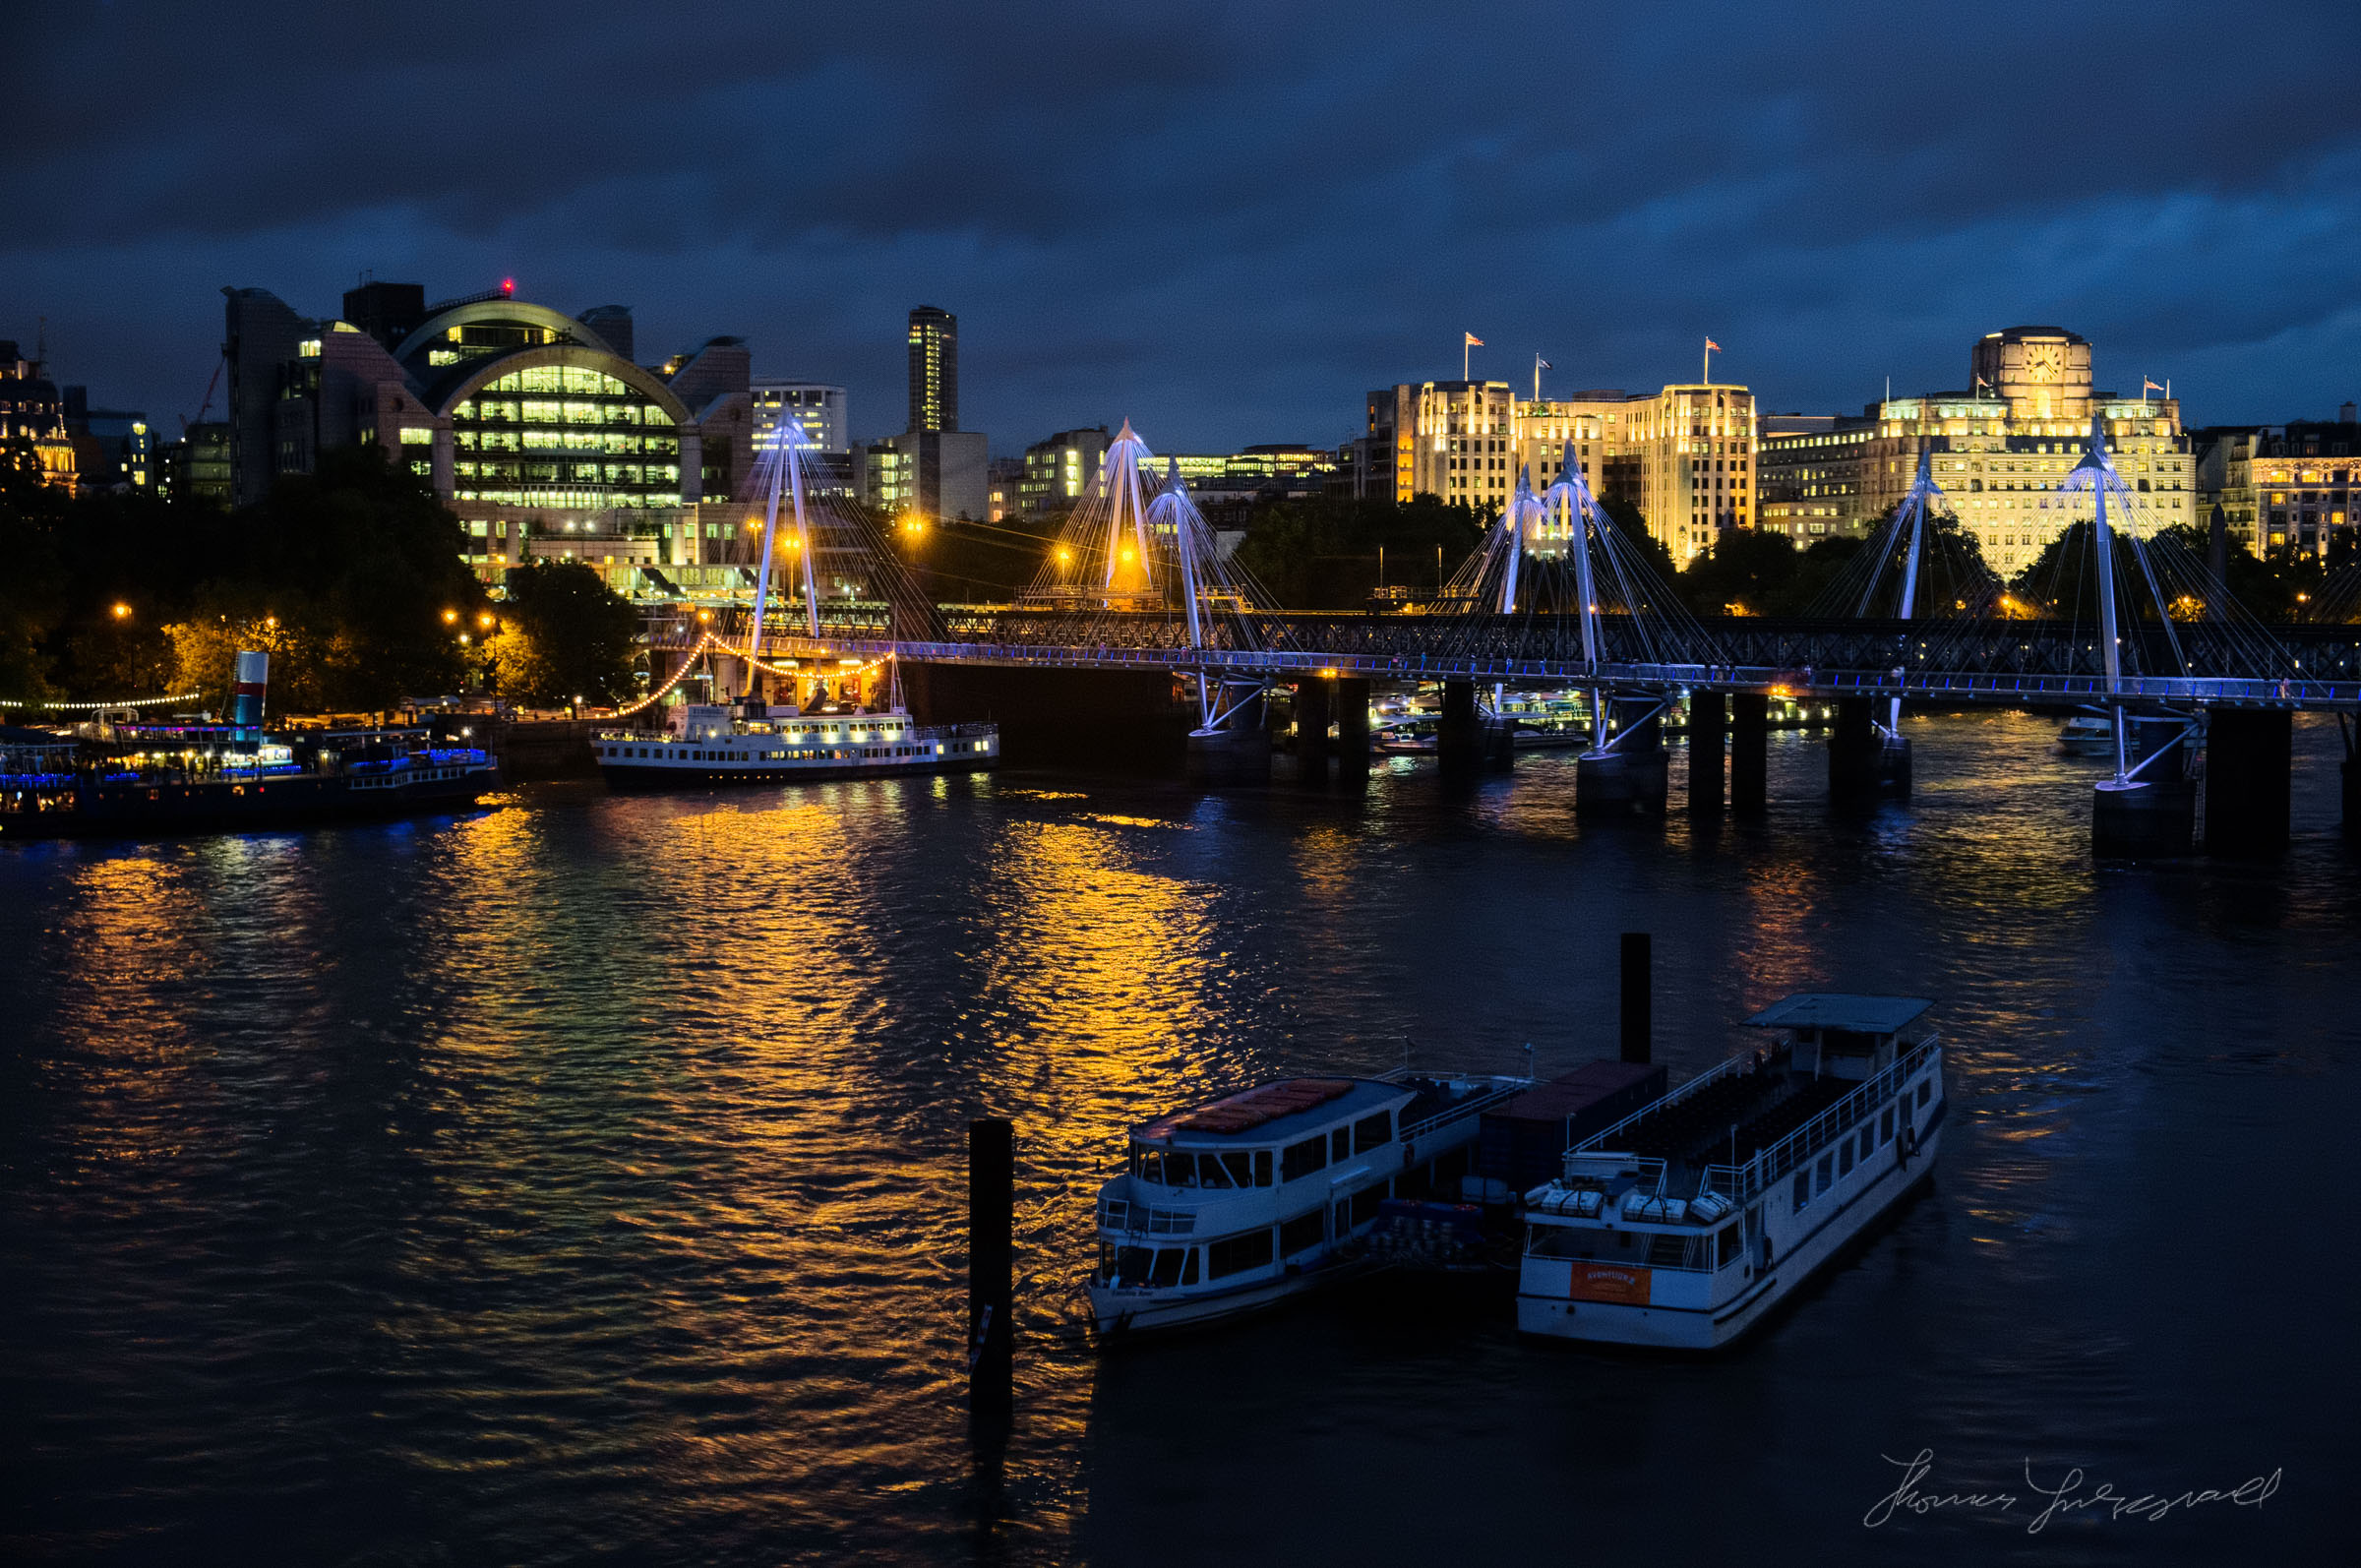 Riverboats on the Thames at Night